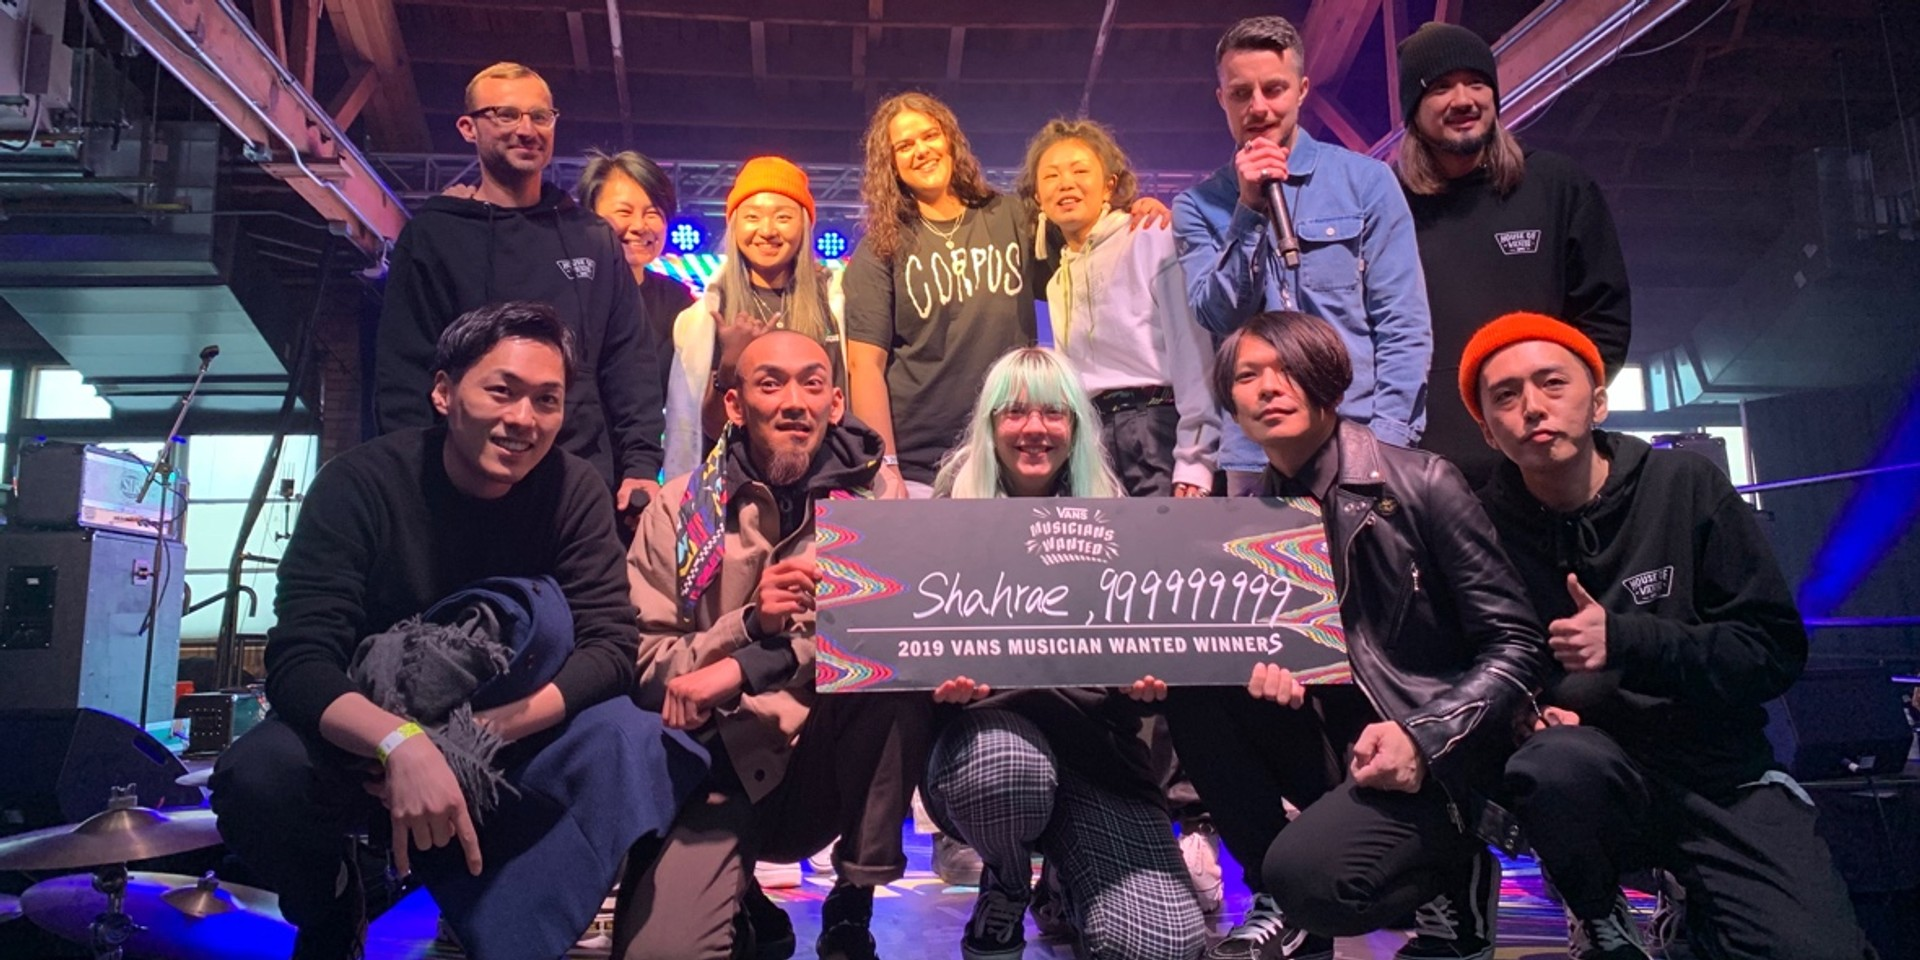 Vans Musicians Wanted crown dual winners Shahrae and 999999999